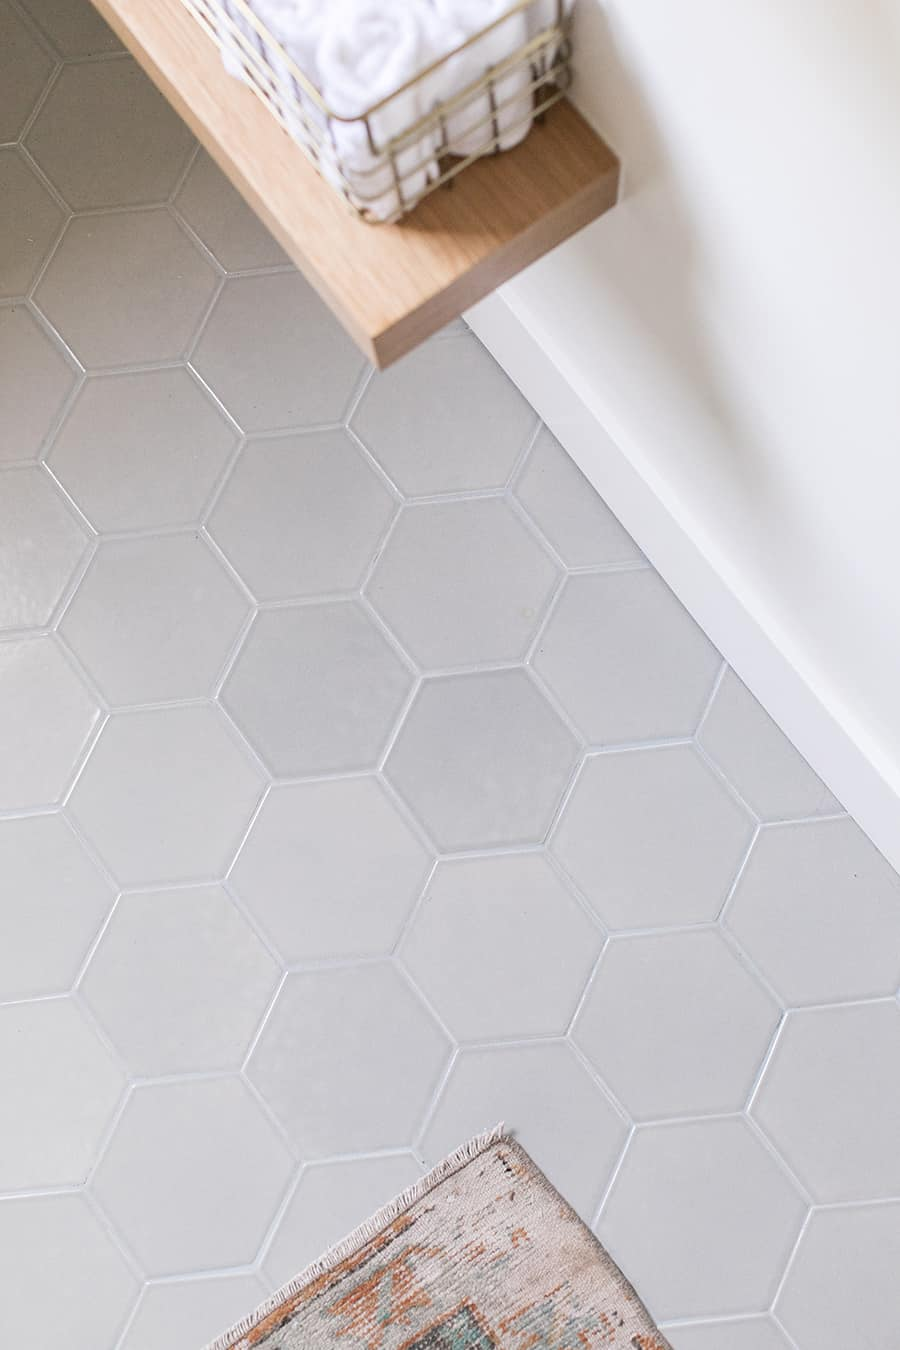 Light gray Fireclay tile